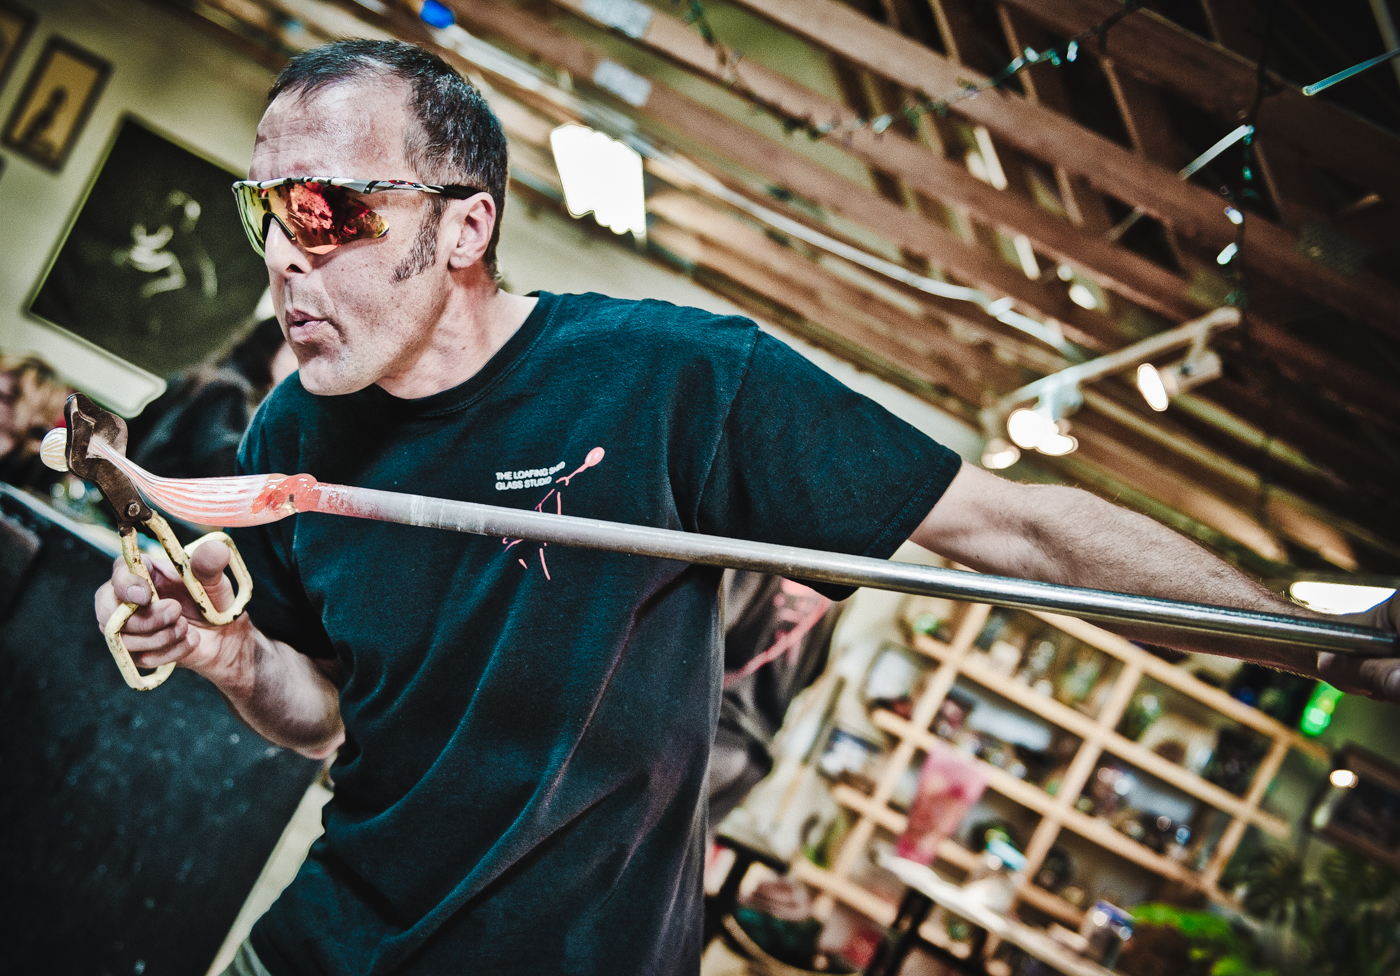 Shaping molten glass, the Loafing Shed Glass Studio